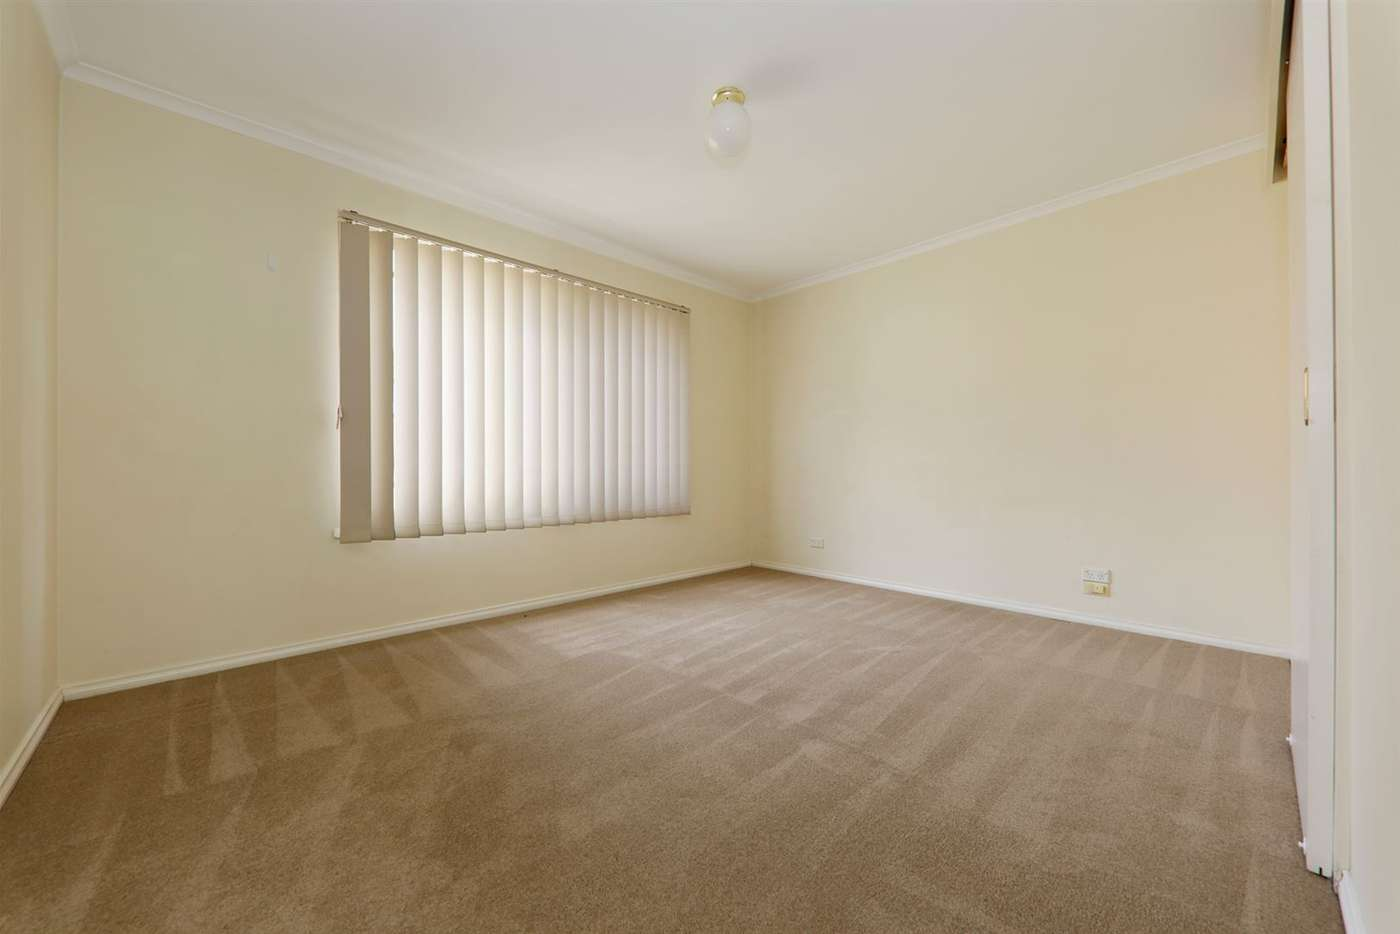 Sixth view of Homely unit listing, 15/12 Surrey Road, Mount Waverley VIC 3149